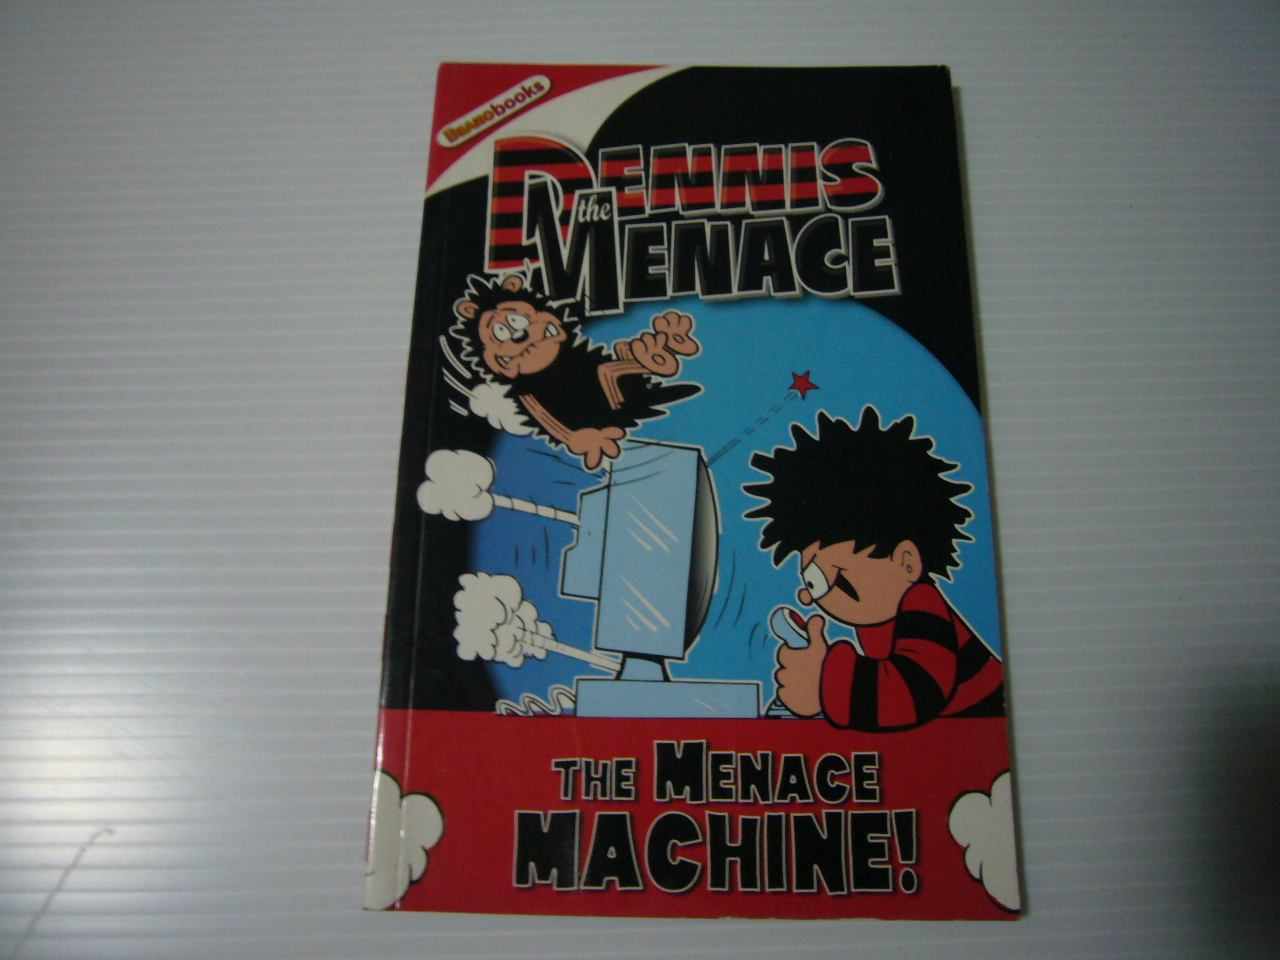 Dennis the Menace 7: The Menace Machine!